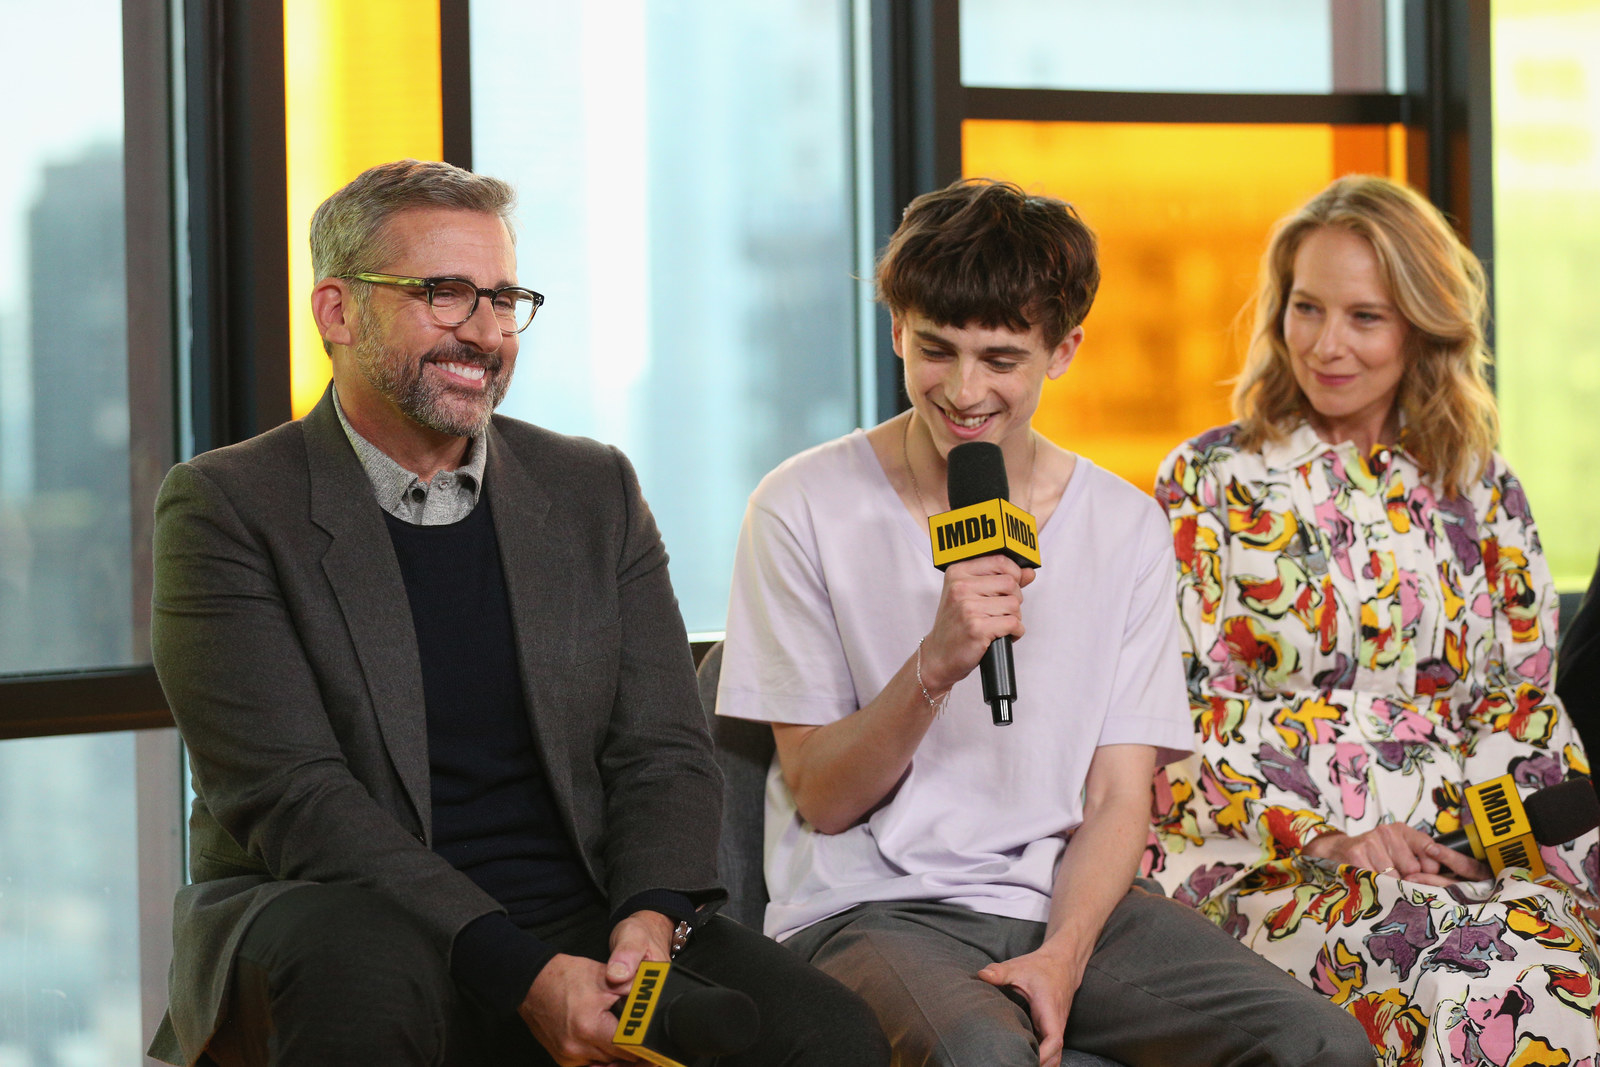 Timothee Chalamet Freaked Out Over Getting To Work With Michael